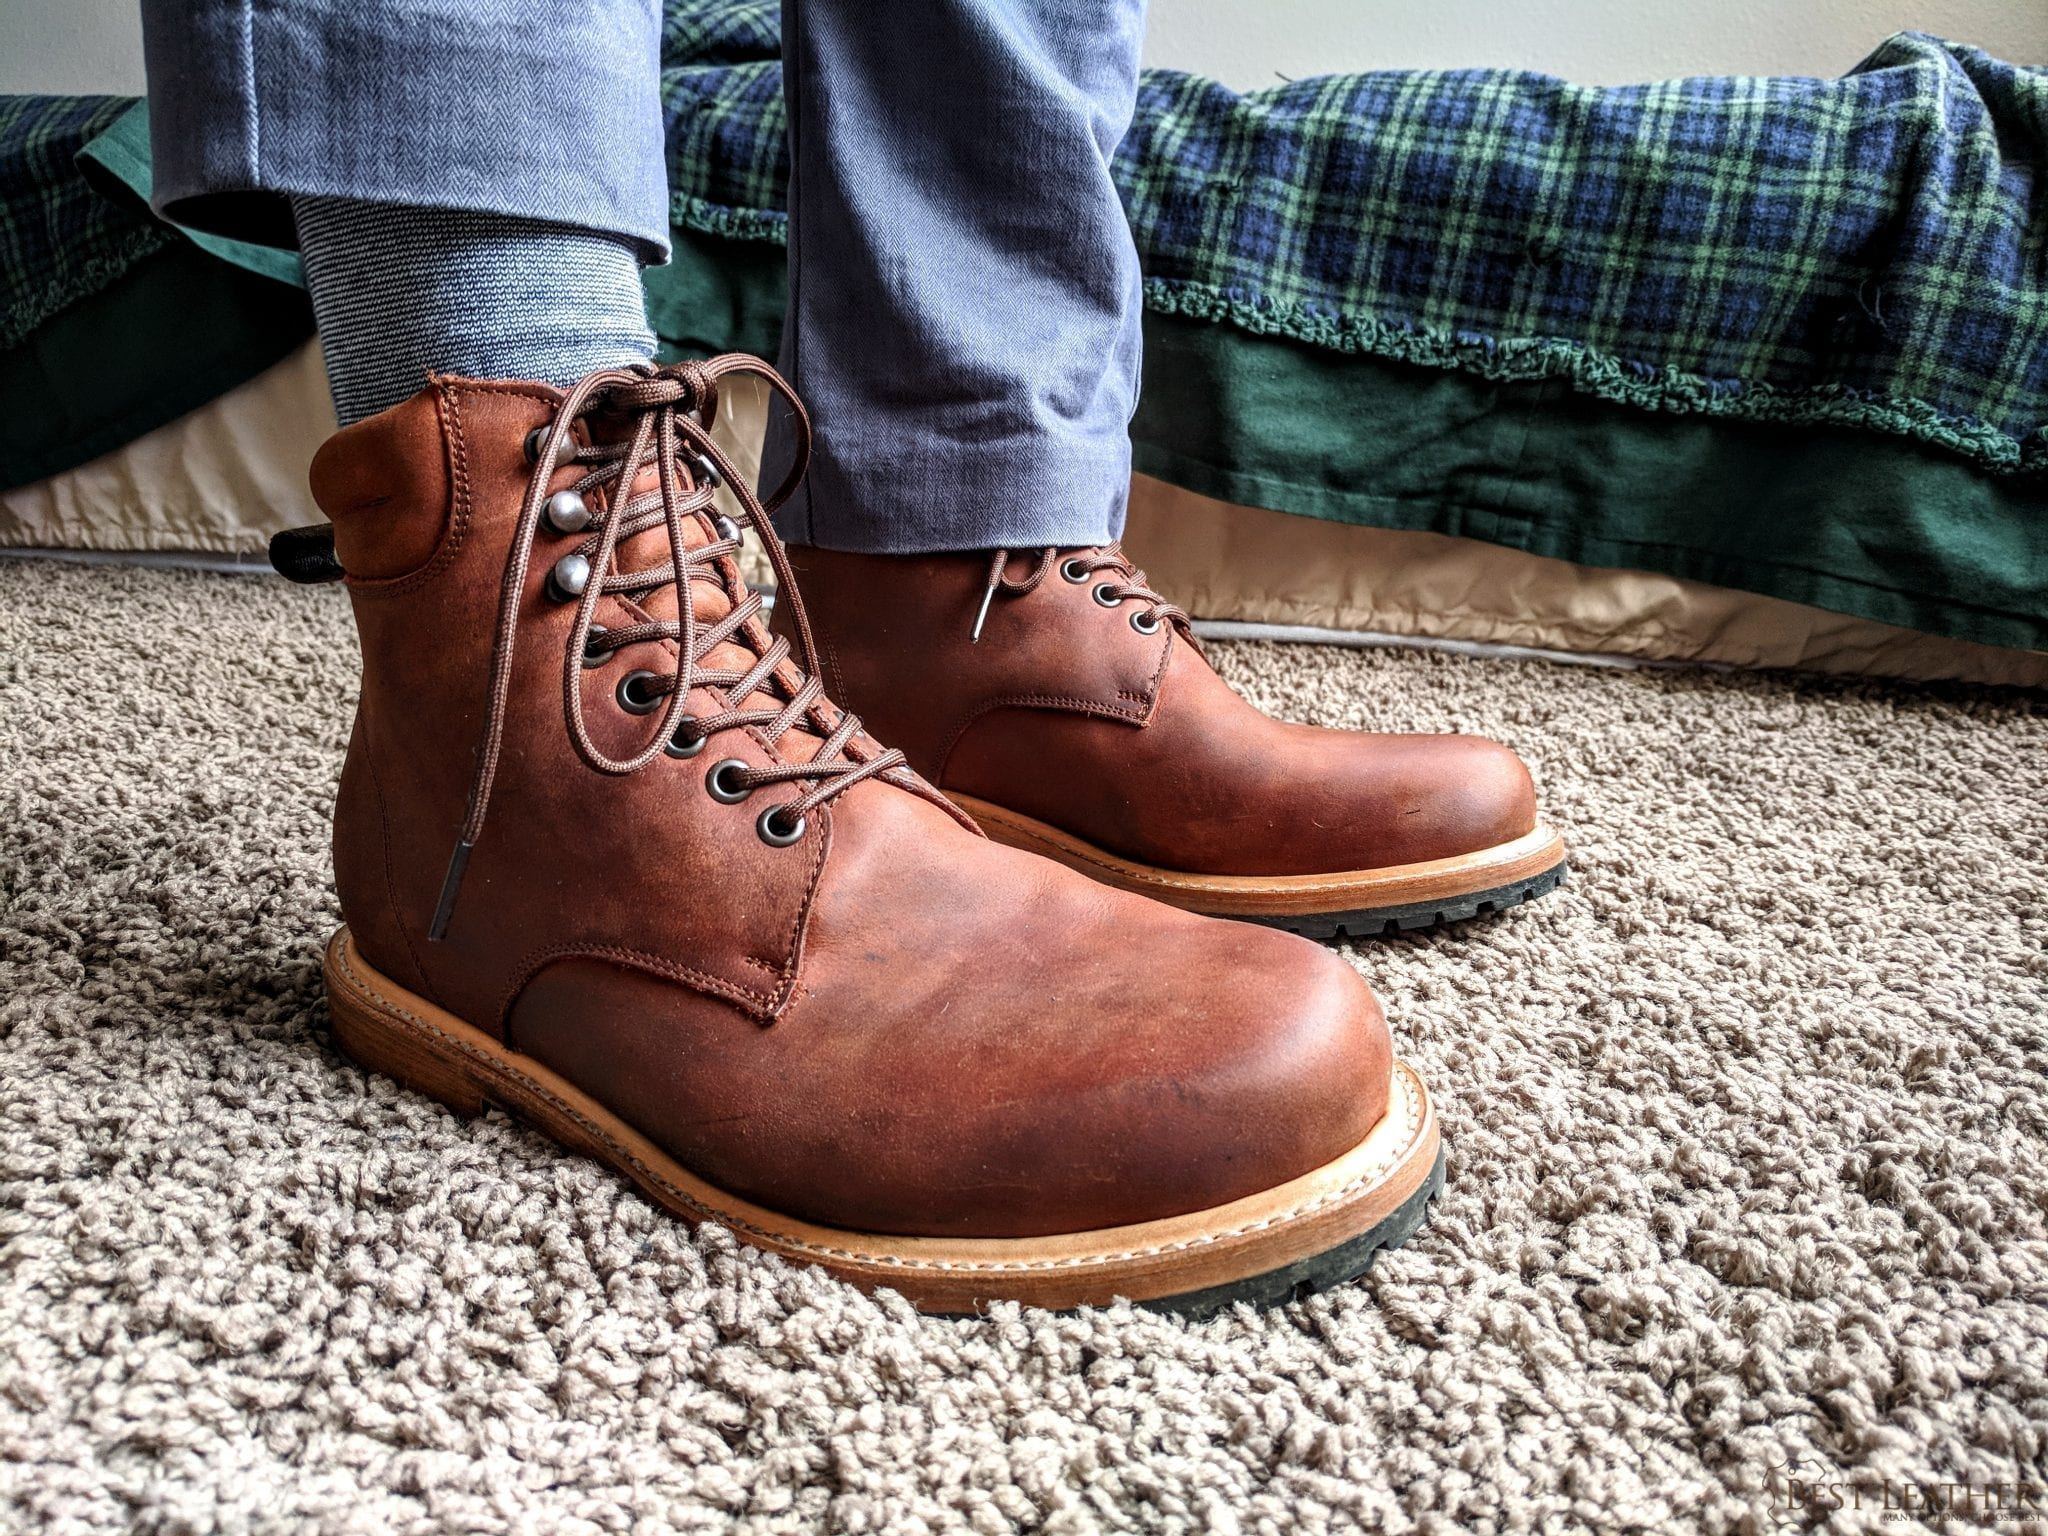 b0a7e2fa118 Wilcox Shiloh Leather Boots Review — $190 - BestLeather.org